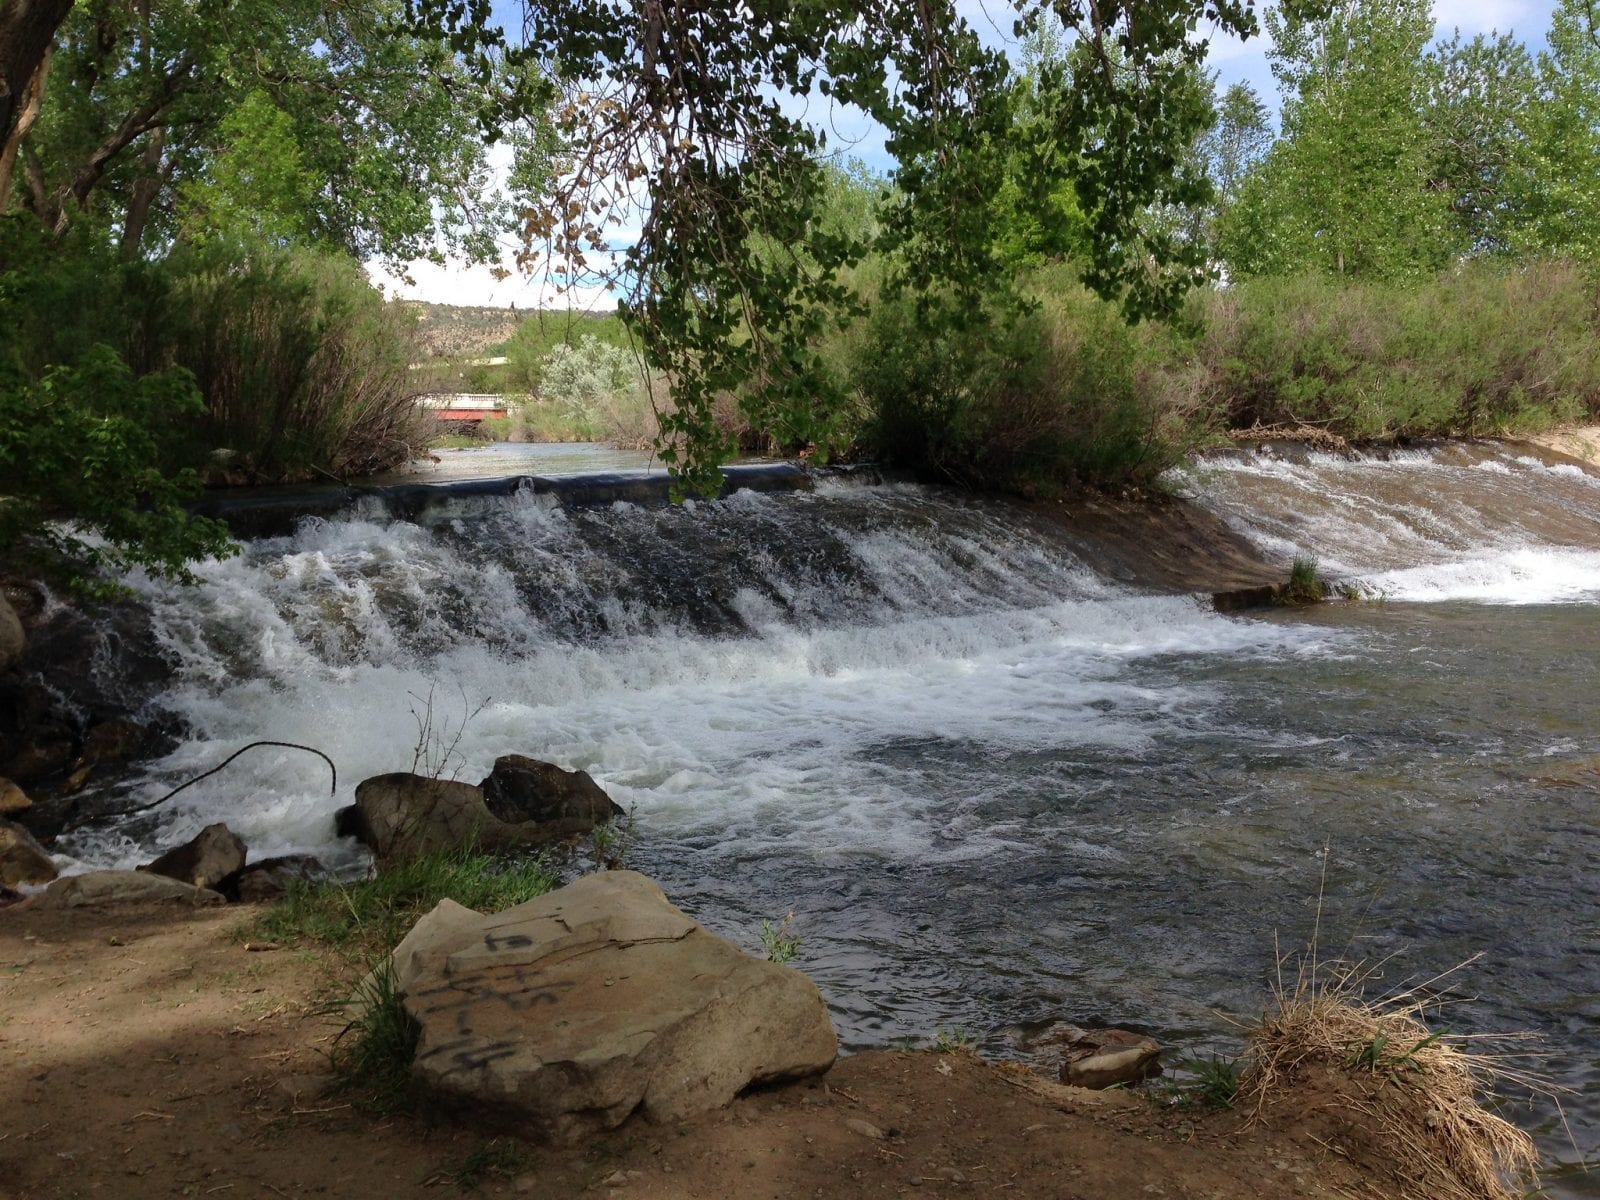 Image of a small waterfall along the Purgatoire River in Colorado